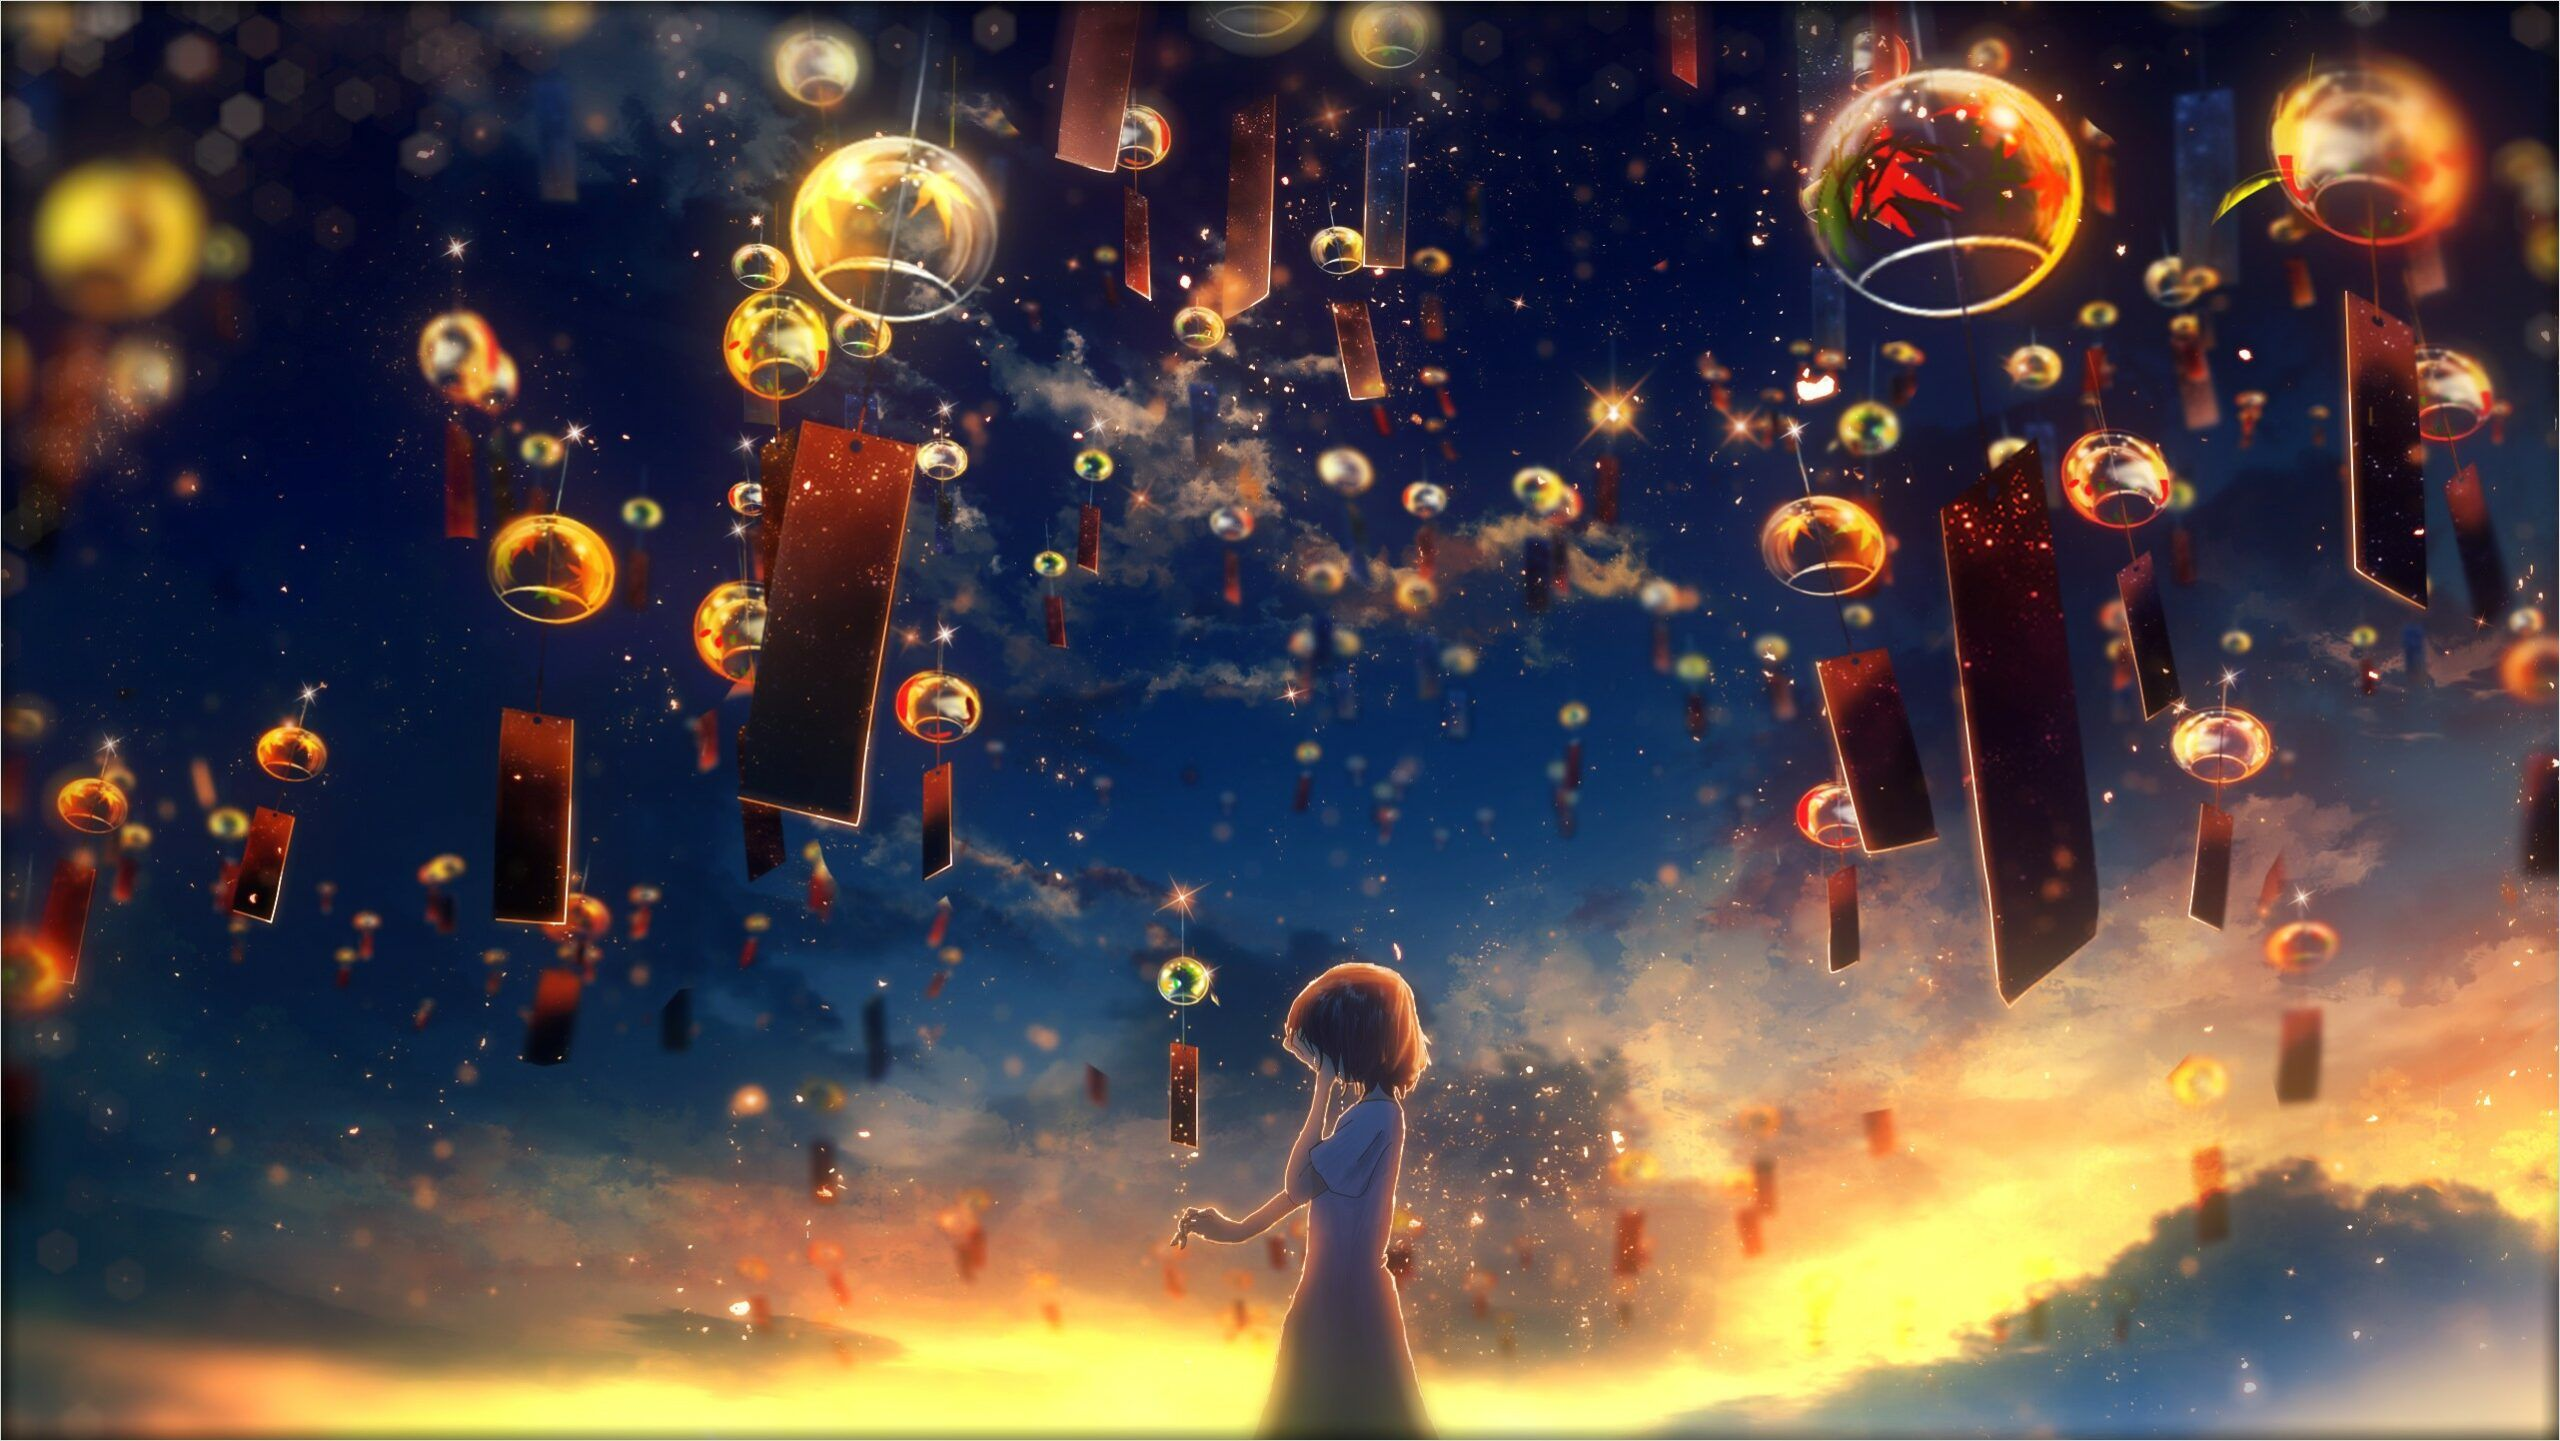 4k Animated Wallpaper Dream In 2020 Sky Anime Anime Artwork Anime Wallpaper